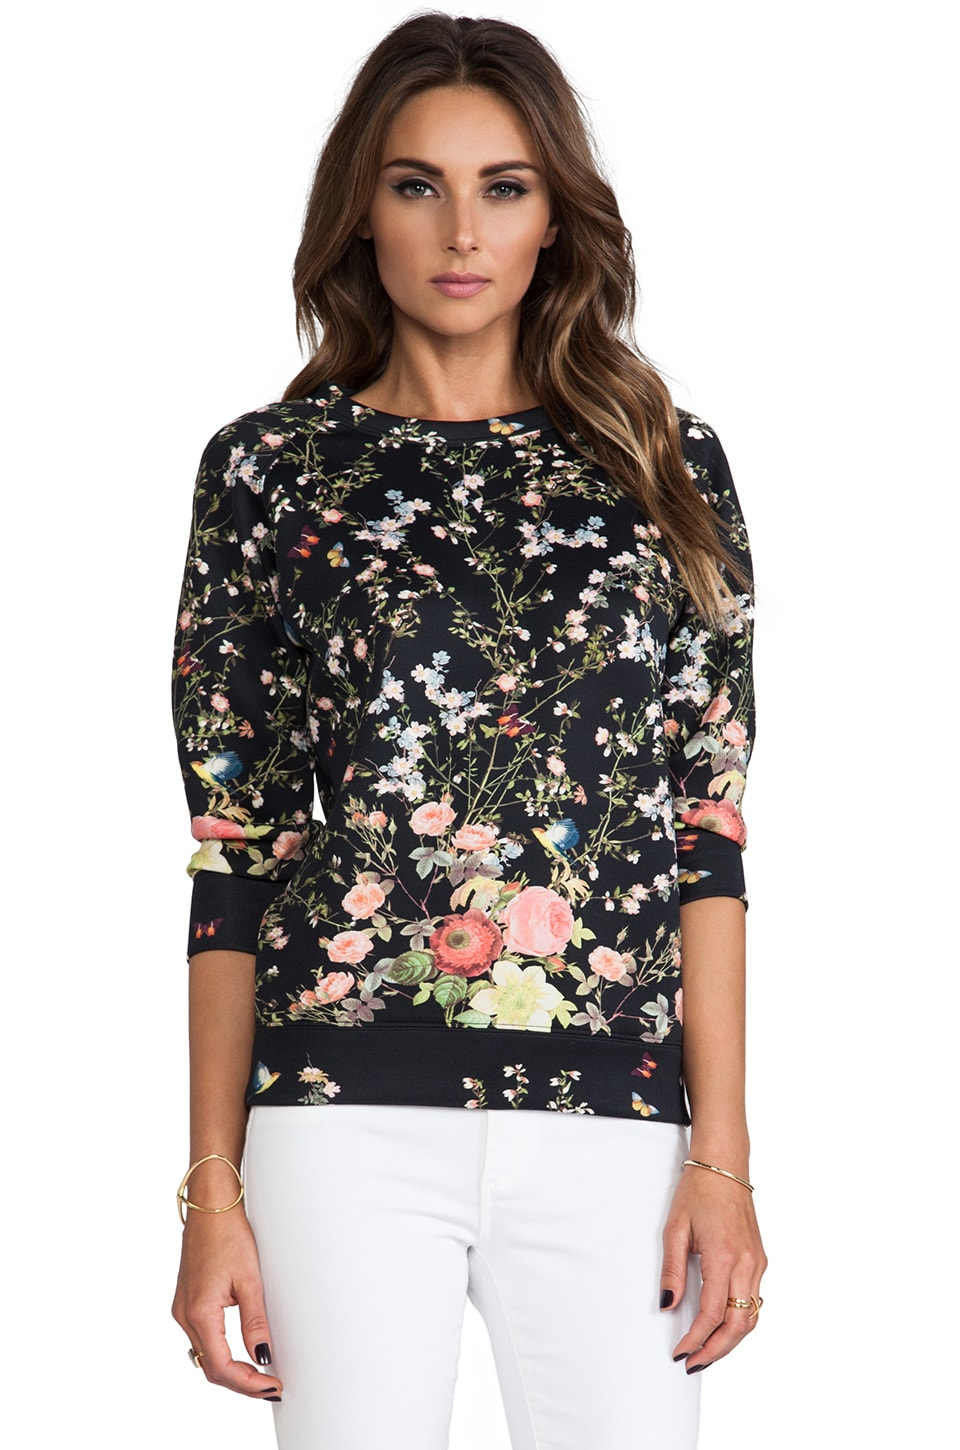 ROSEanna Neo James Sweater in Noir